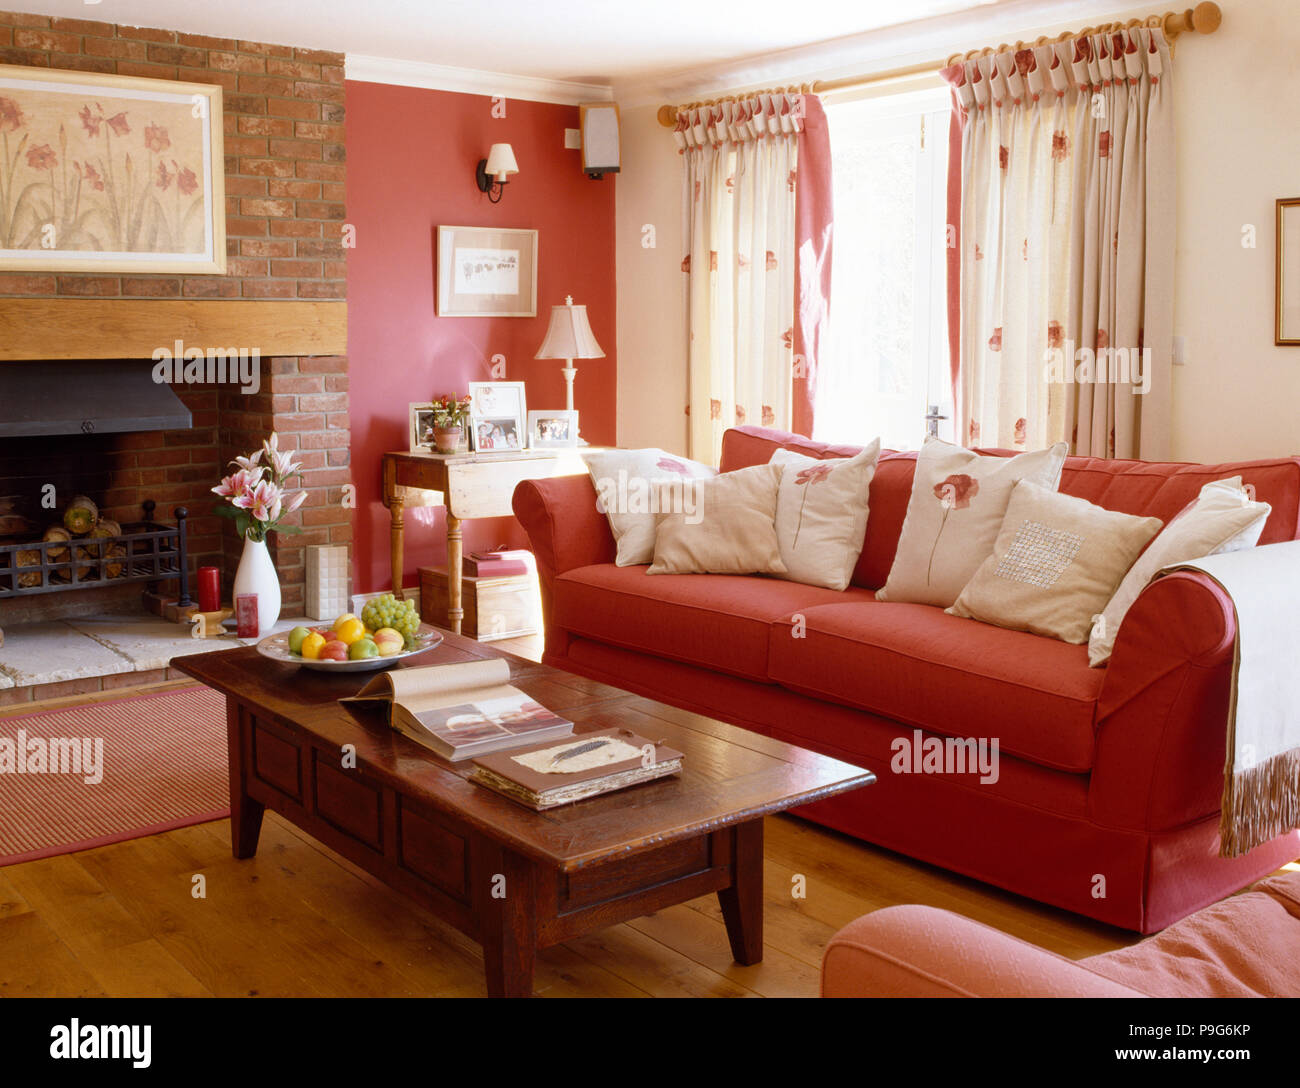 Wooden coffee table and red sofa with white cushions in a - Red walls in living room ...